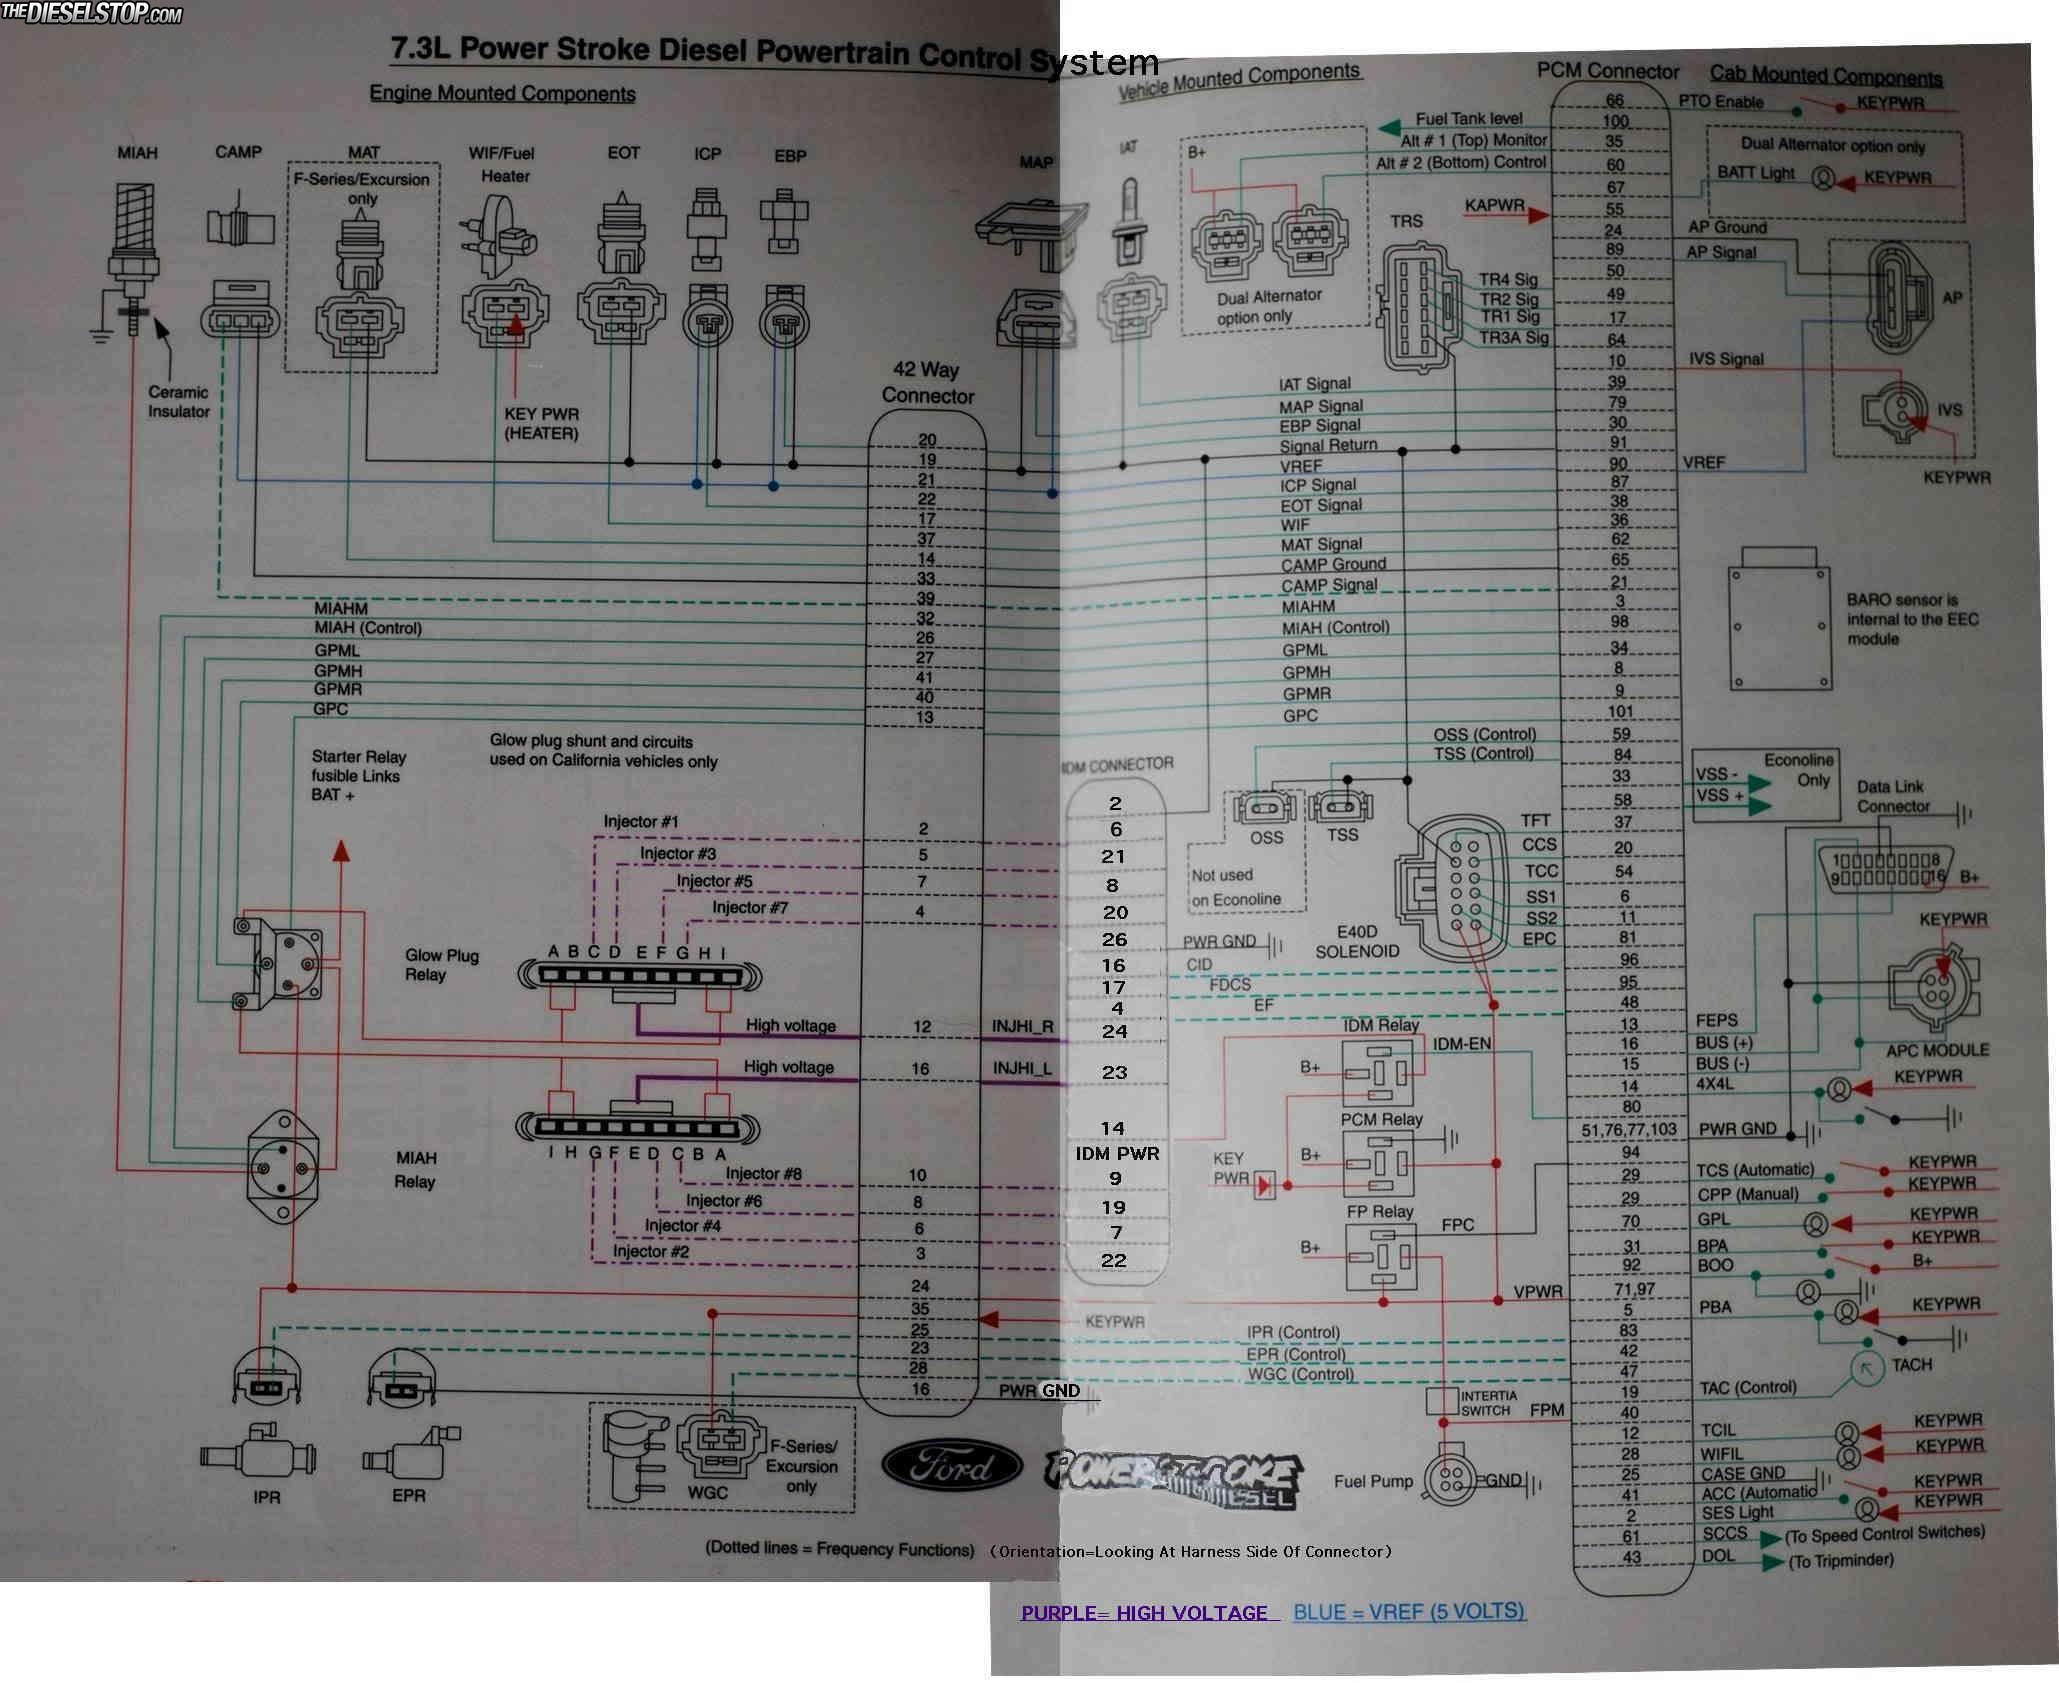 2002 Ford E350 Wiring Diagrams also Ford F 250 Super Duty Questions 2012 F250 Fuse Box as well 99 F350 Fuse Diagram Php Attachmentid 18318 Stc 1 1255897875 Snapshot Admirable Check 16 Under Hood furthermore 7 Pin Trailer Wiring Diagram F150 further Remotestart. on 2012 ford f250 trailer wiring